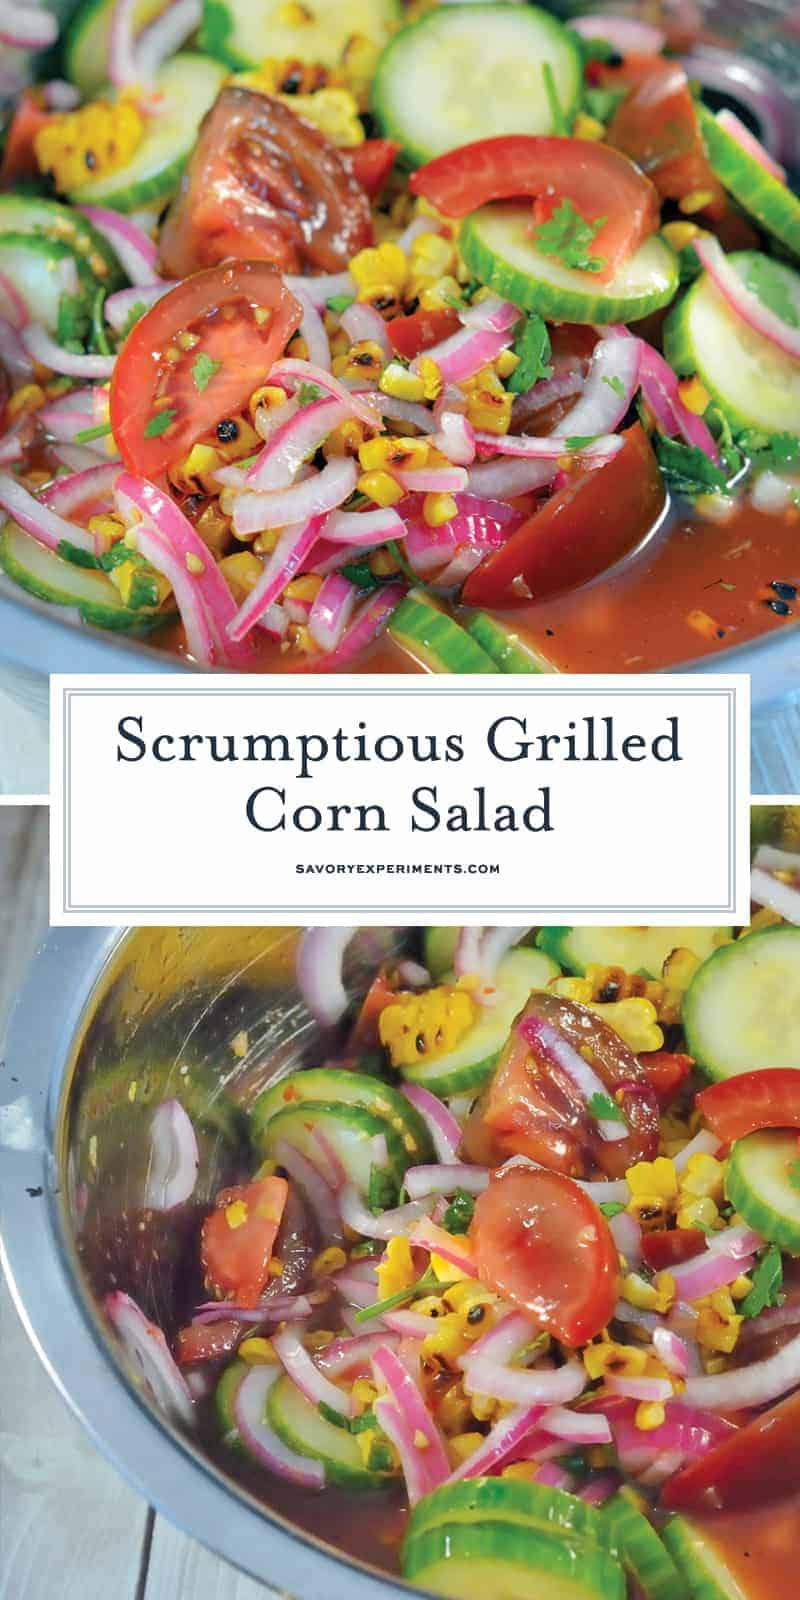 Grilled Corn Salad uses grilled corn, heirloom tomatoes, cucumber and red onion in a zesty homemade dressing. It will be your favorite summer salad!#grilledcornsalad #tomatosalad #summersalads www.savoryexperiments.com